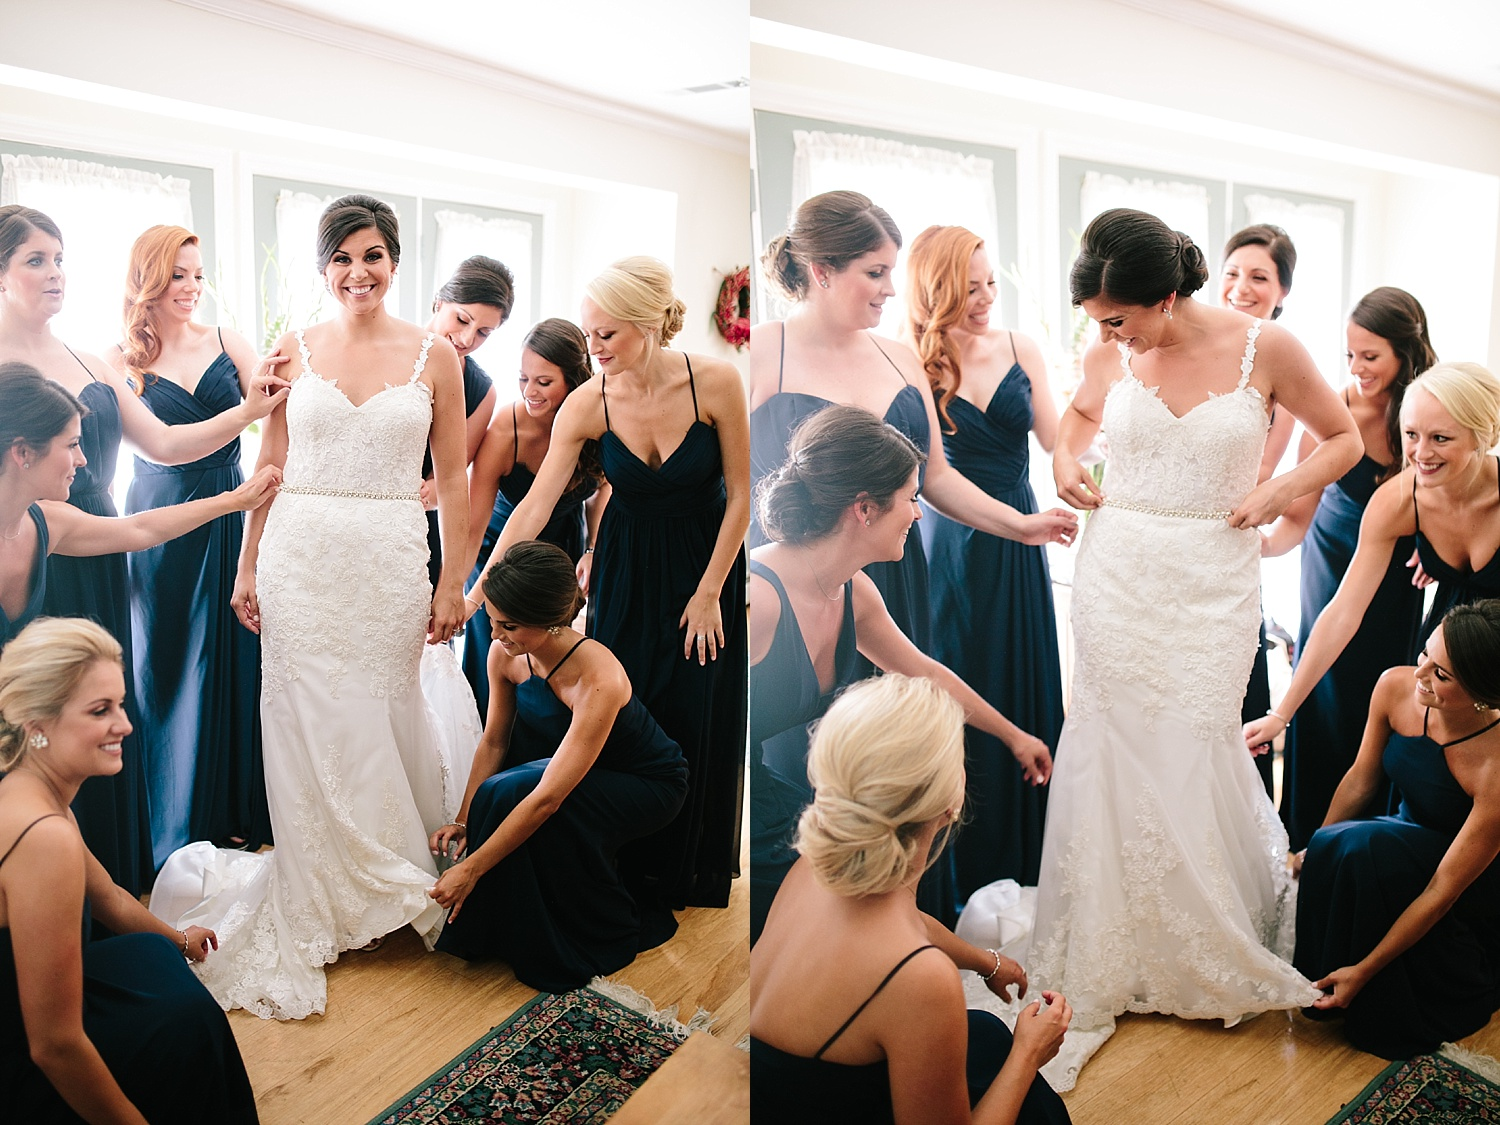 emilyandjoe_bluebell_countryclub_philadelphia_wedding_image032.jpg